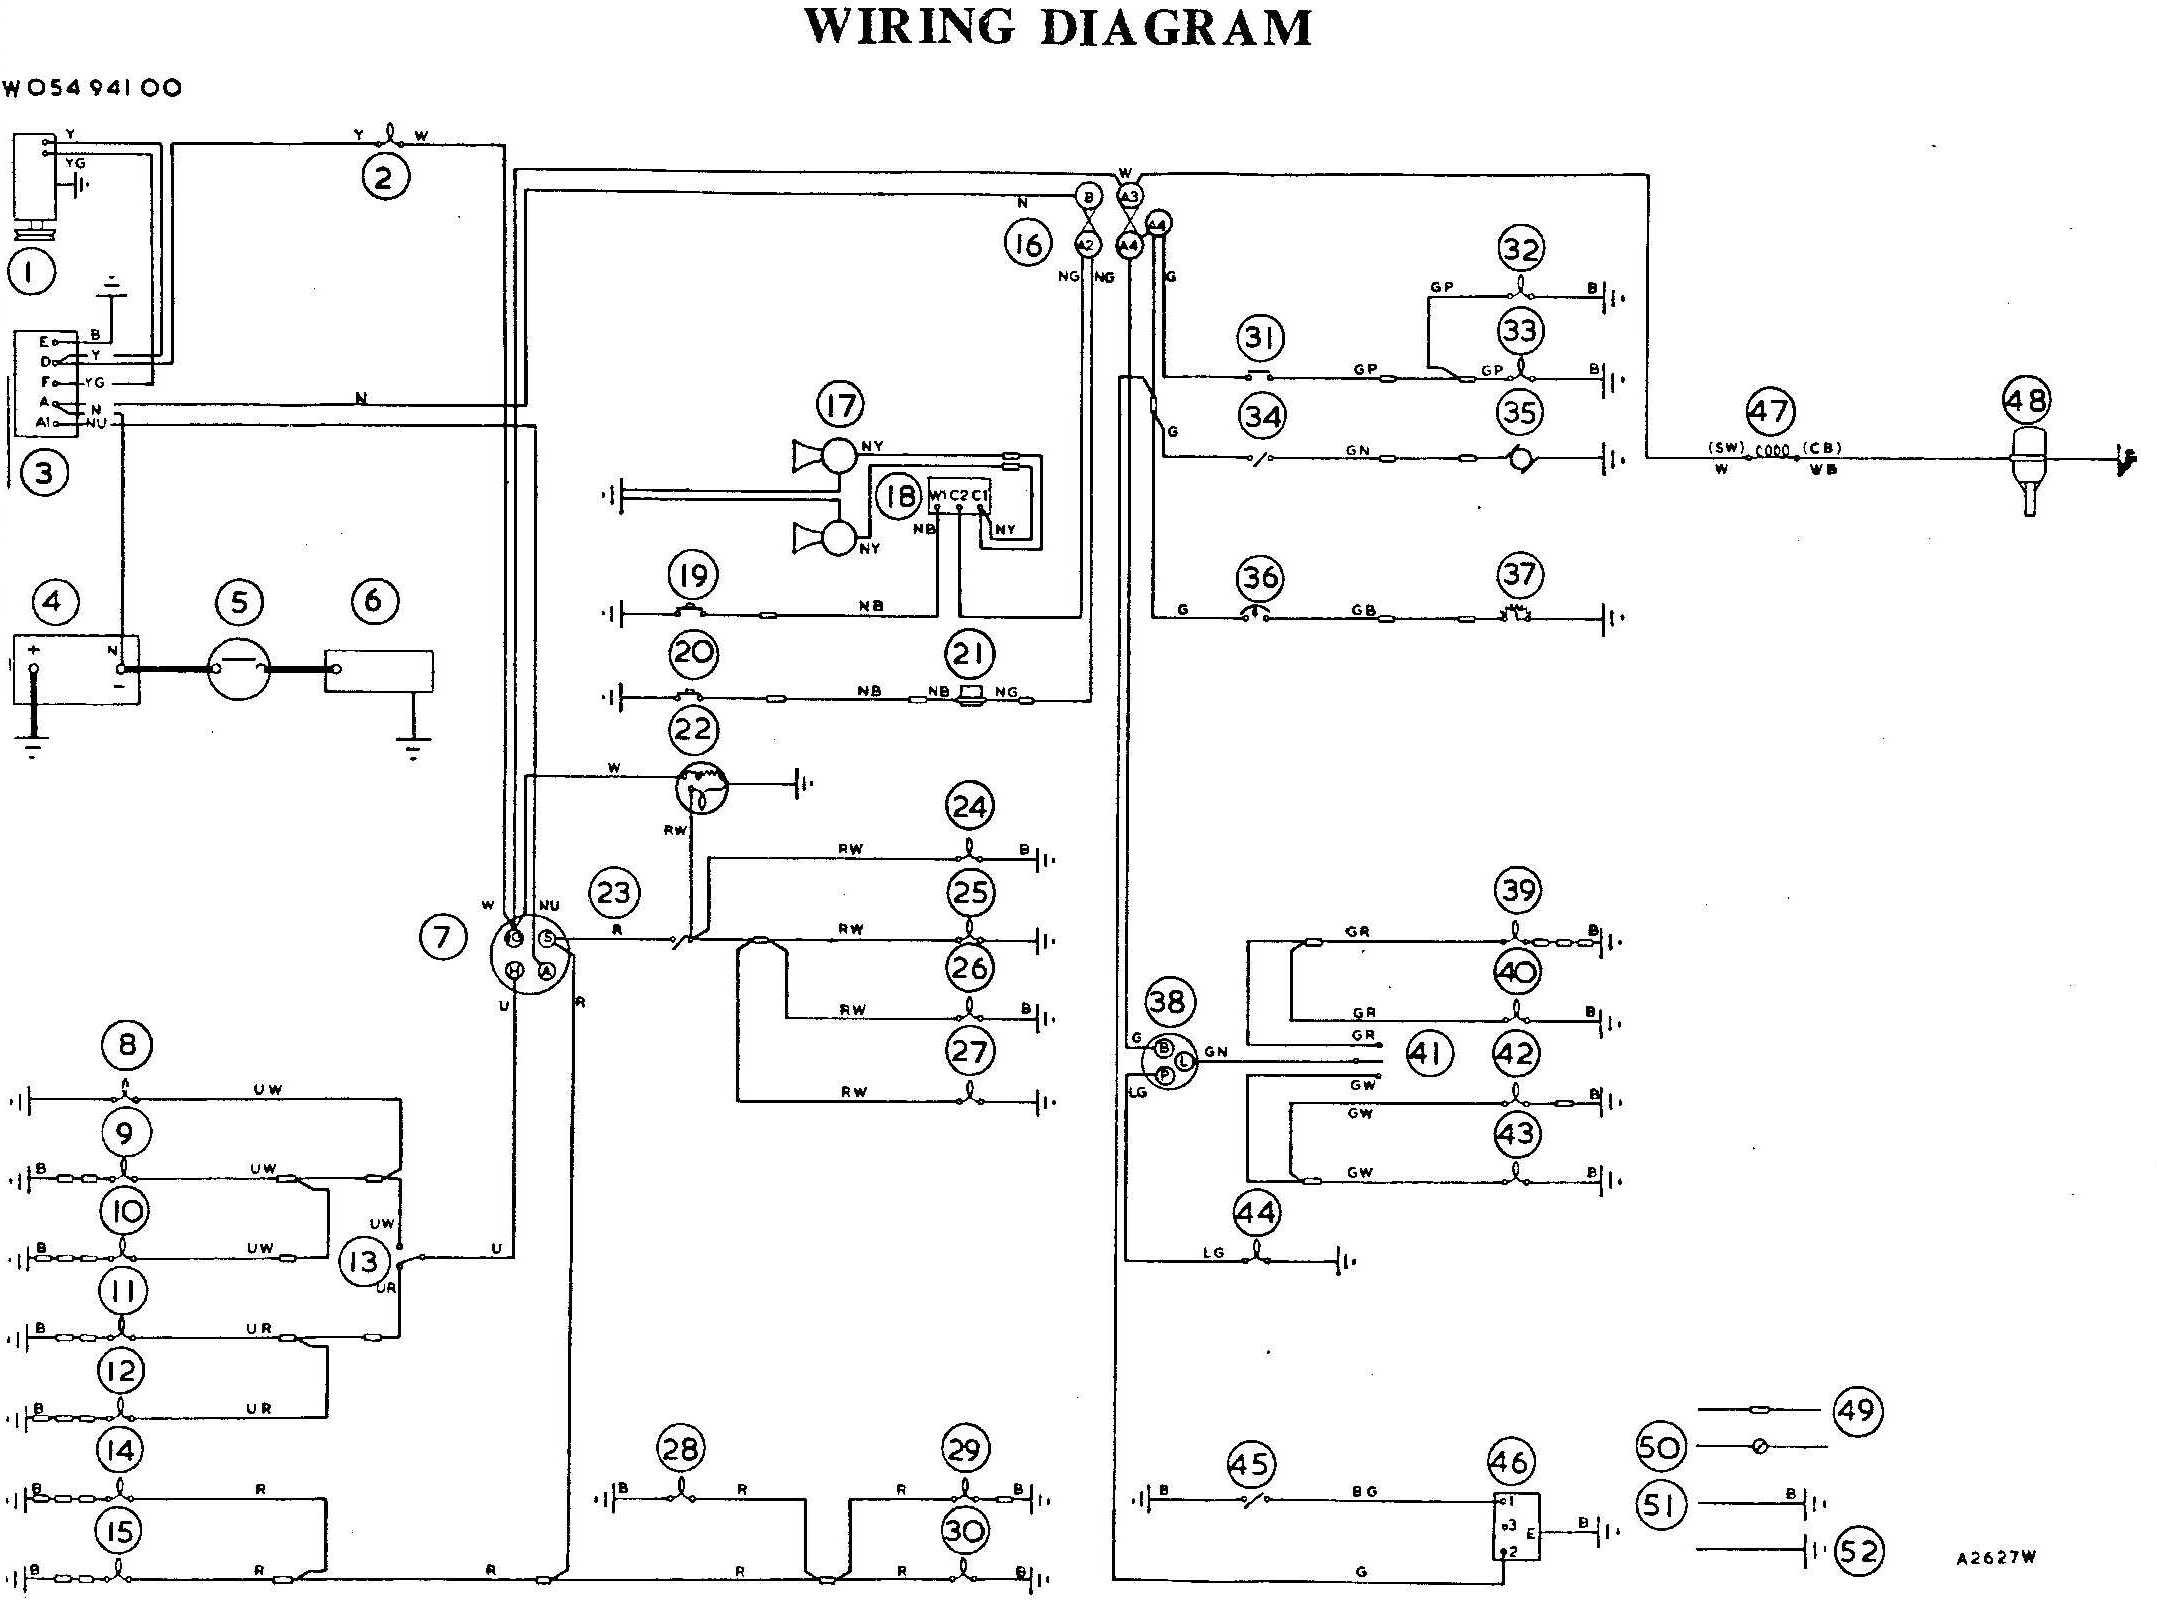 wiringdiag bugeye wiring diagrams simple electrical garage wiring diagram at fashall.co